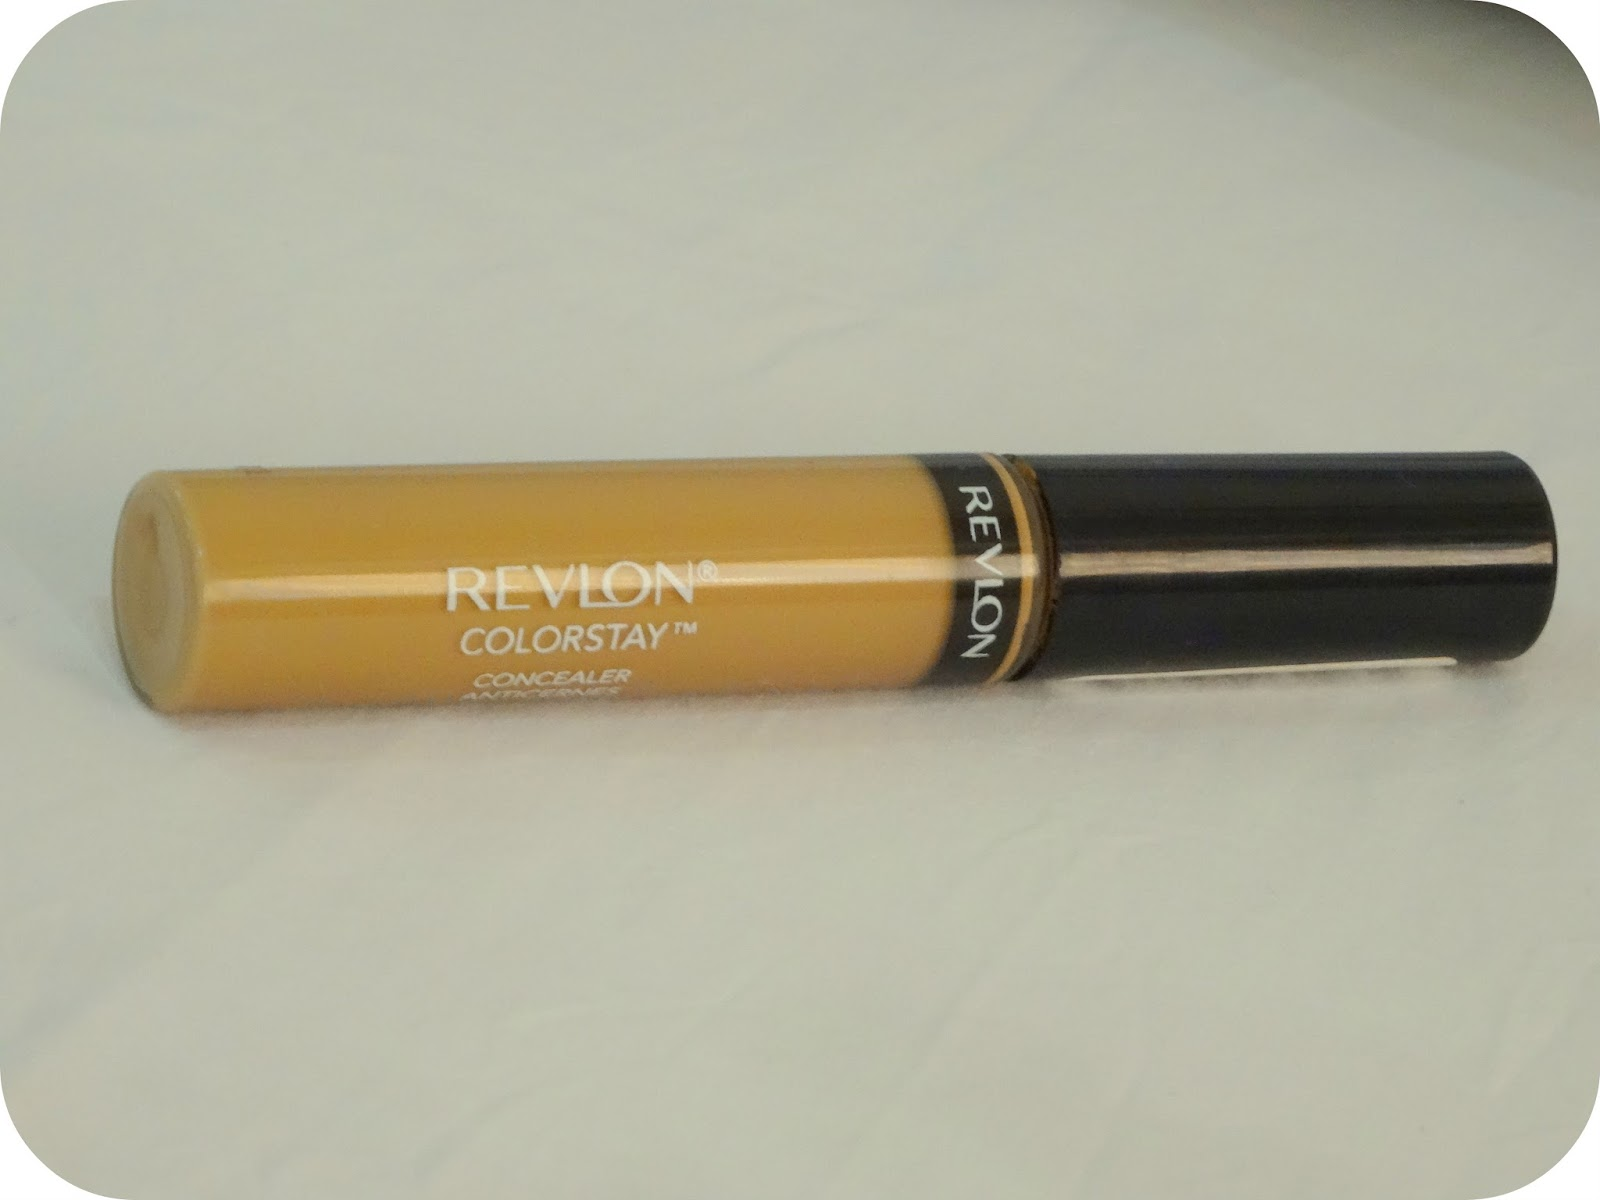 The New Revlon Colorstay Concealer Review